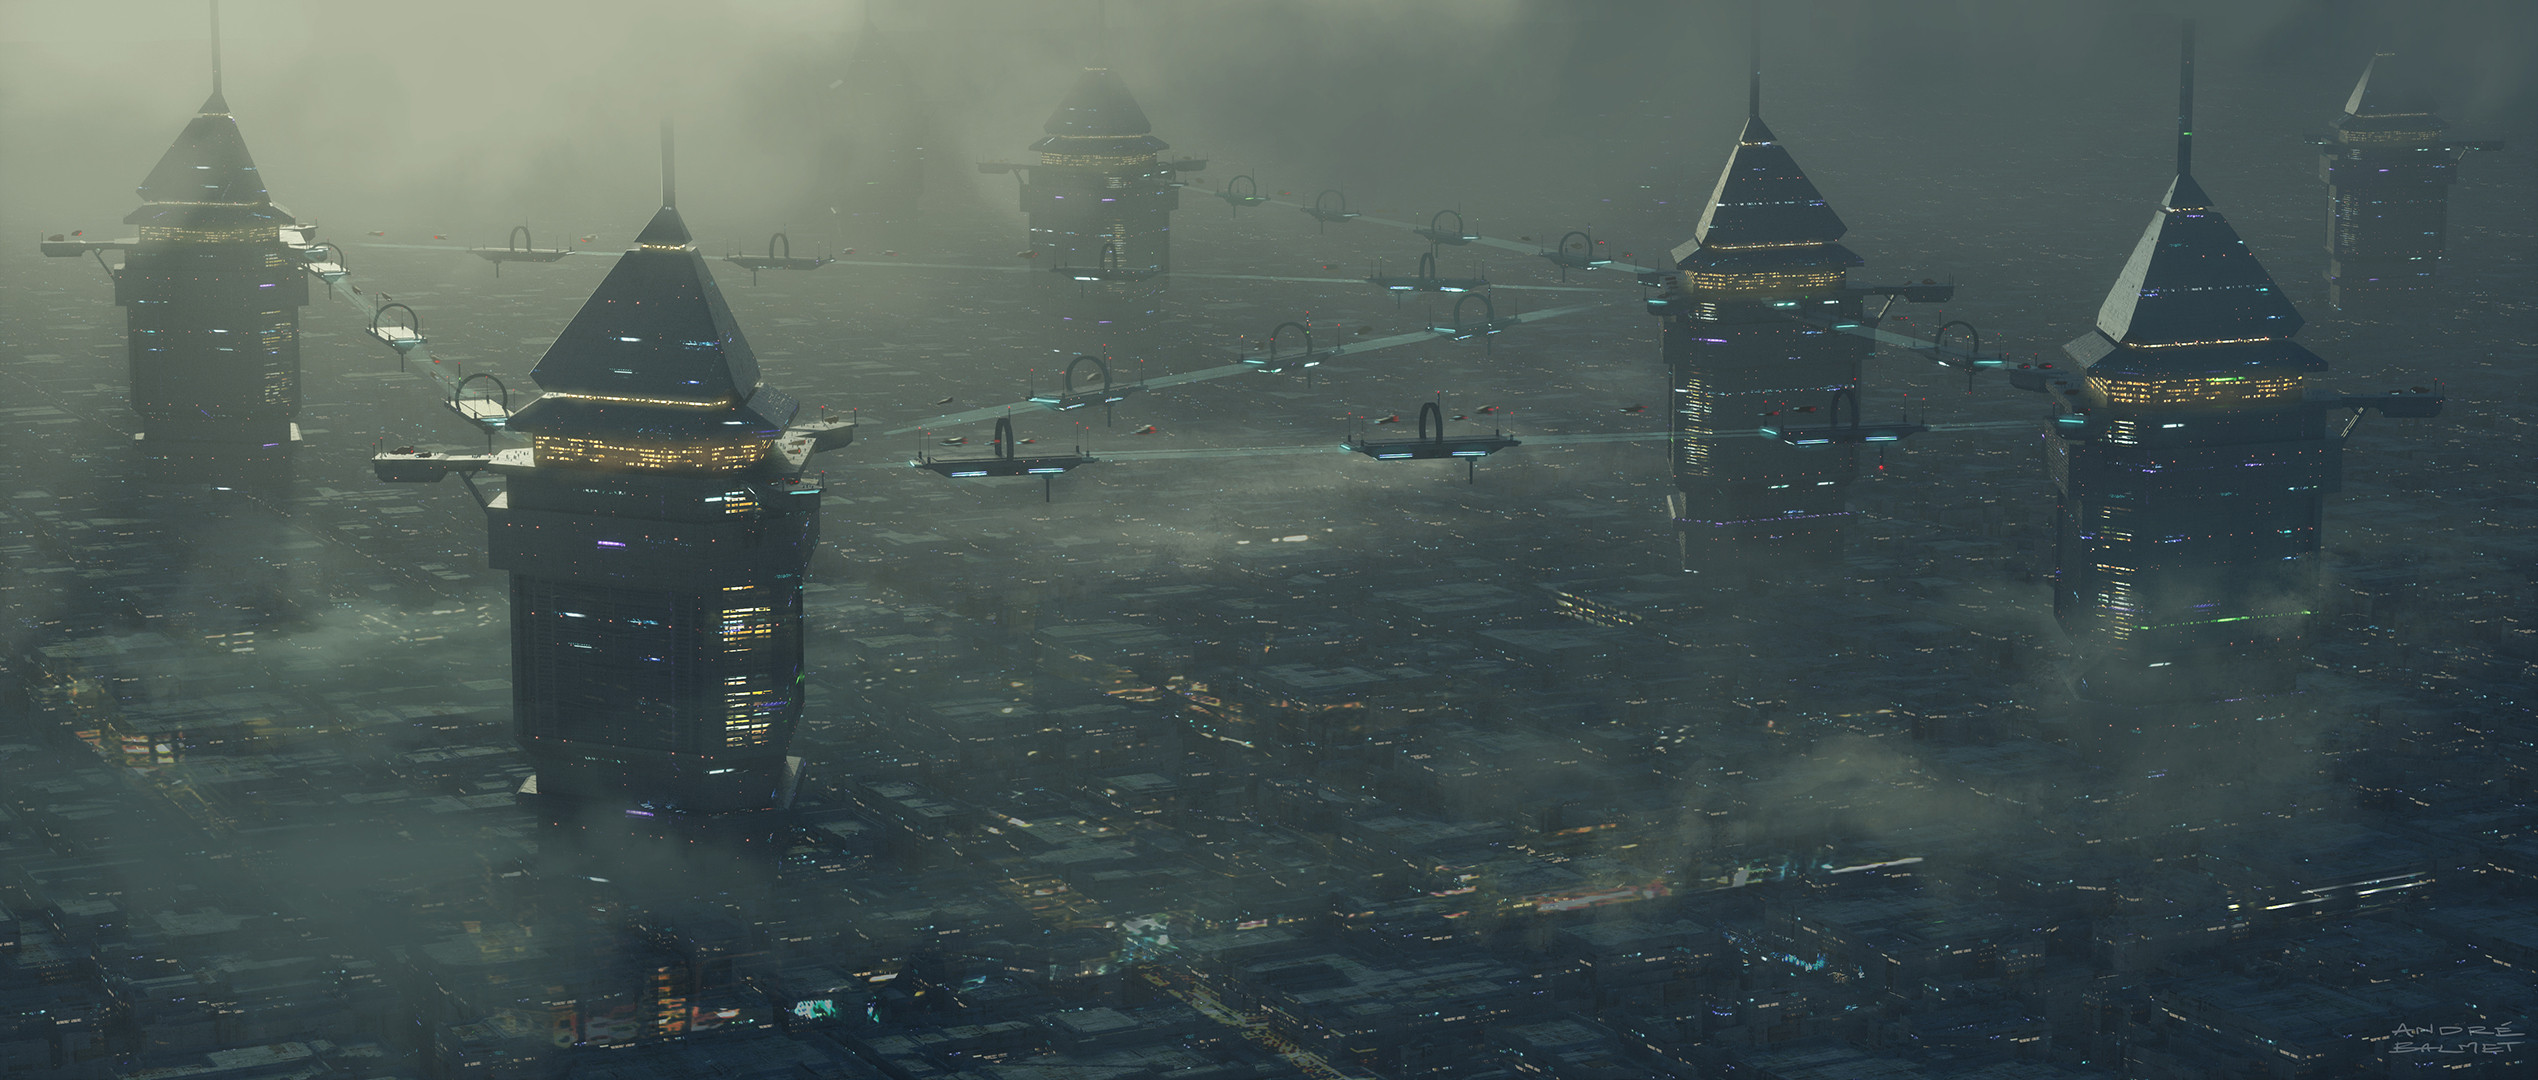 SciFi Future City worldbuilding design photoshop 3d